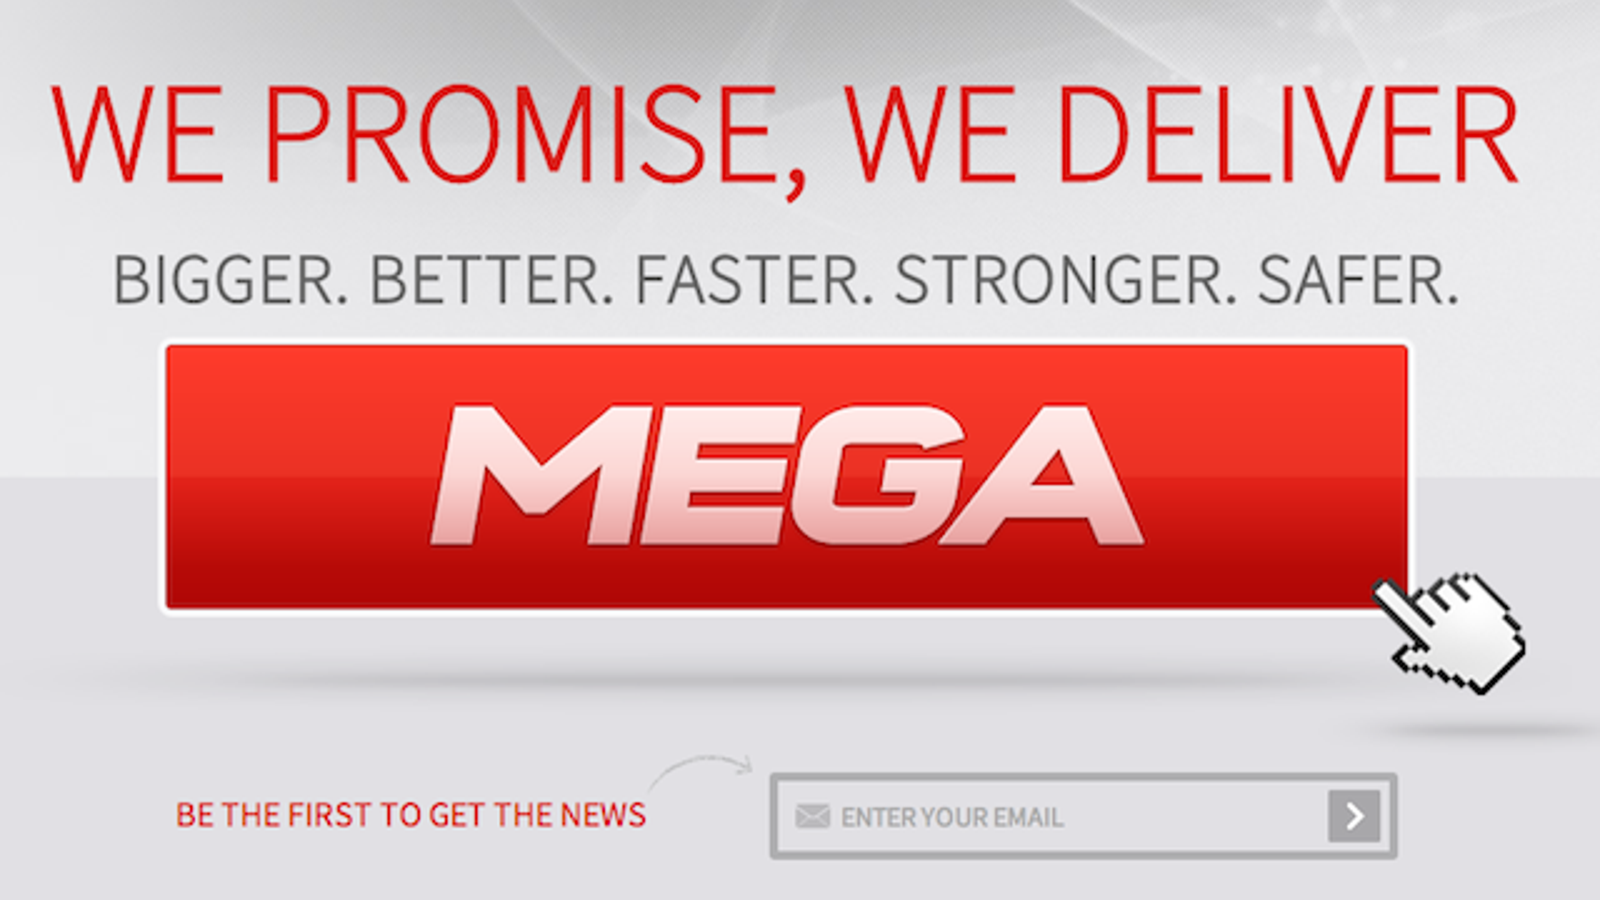 Mega Is Going to Handle Password Resets Differently Than